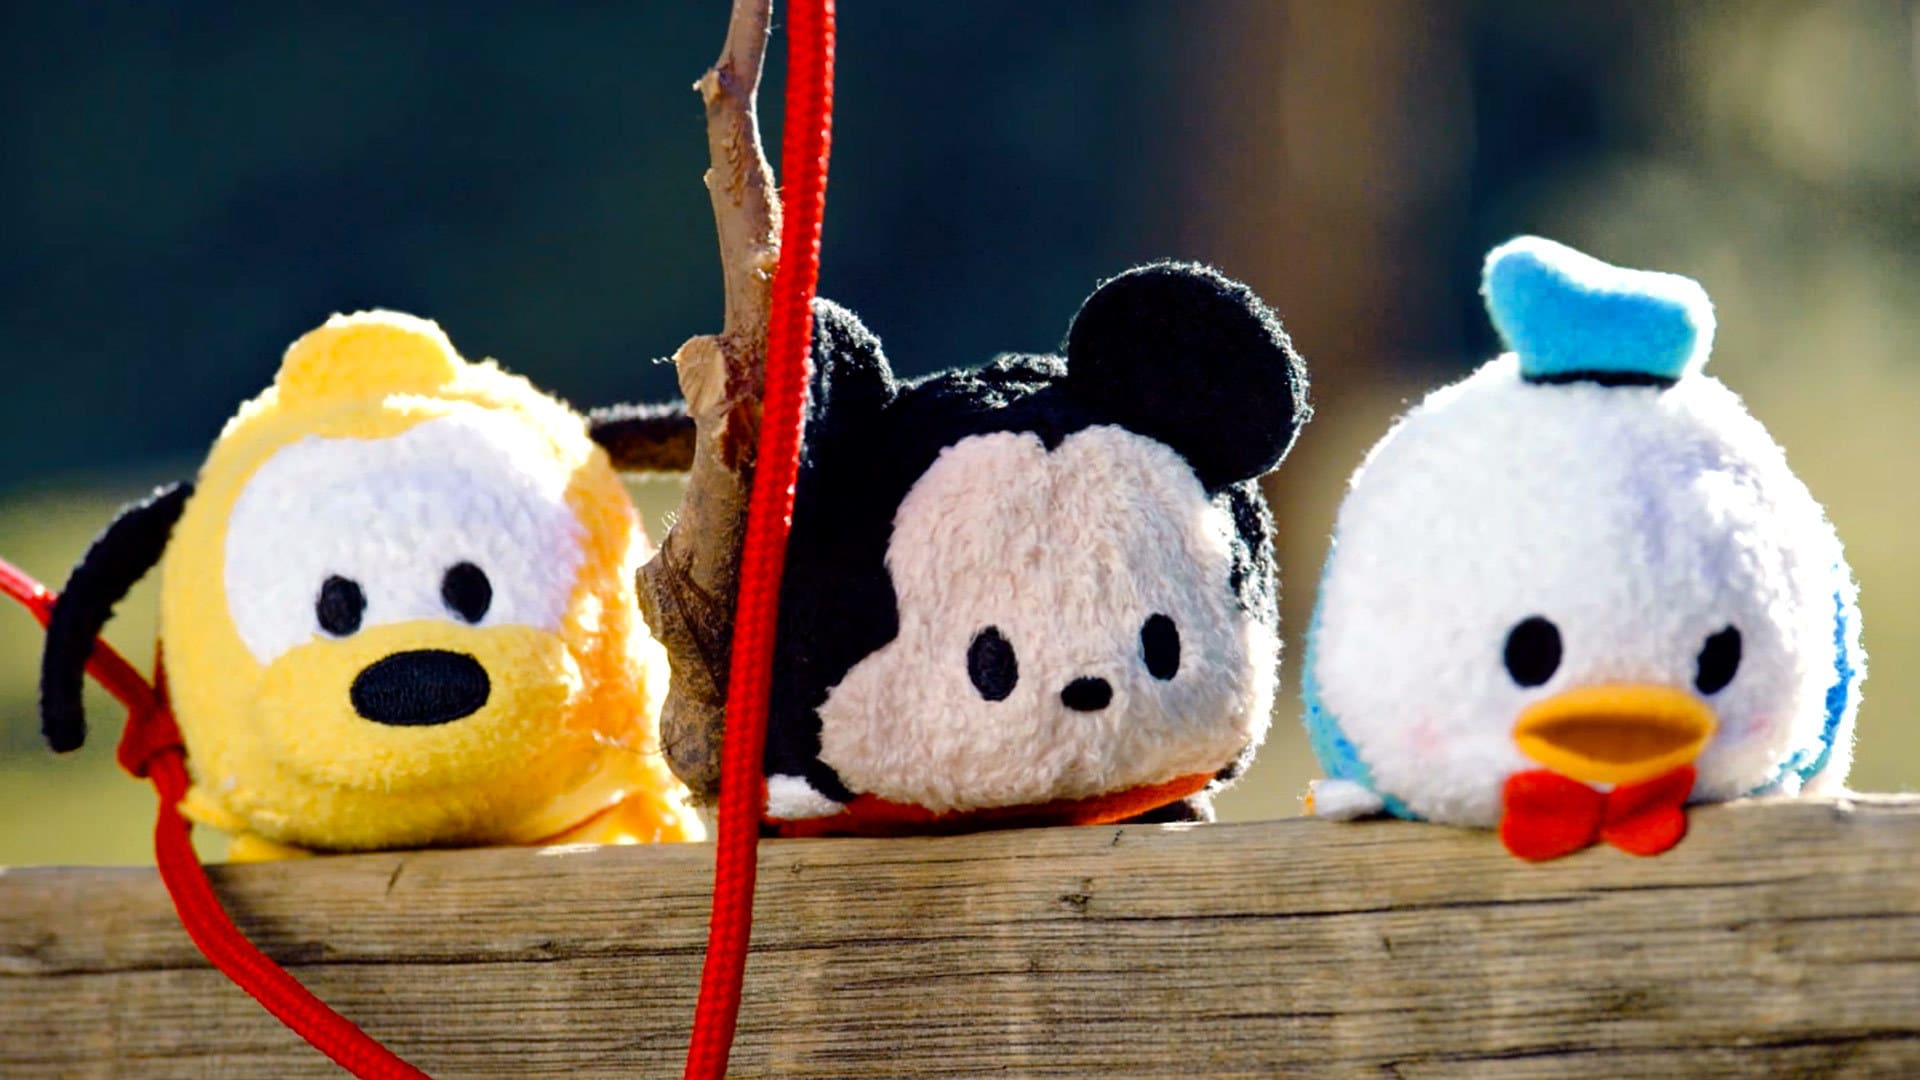 Mickey Mouse Plush Goes Fishing Tsum Tsum Kingdom Episode 4